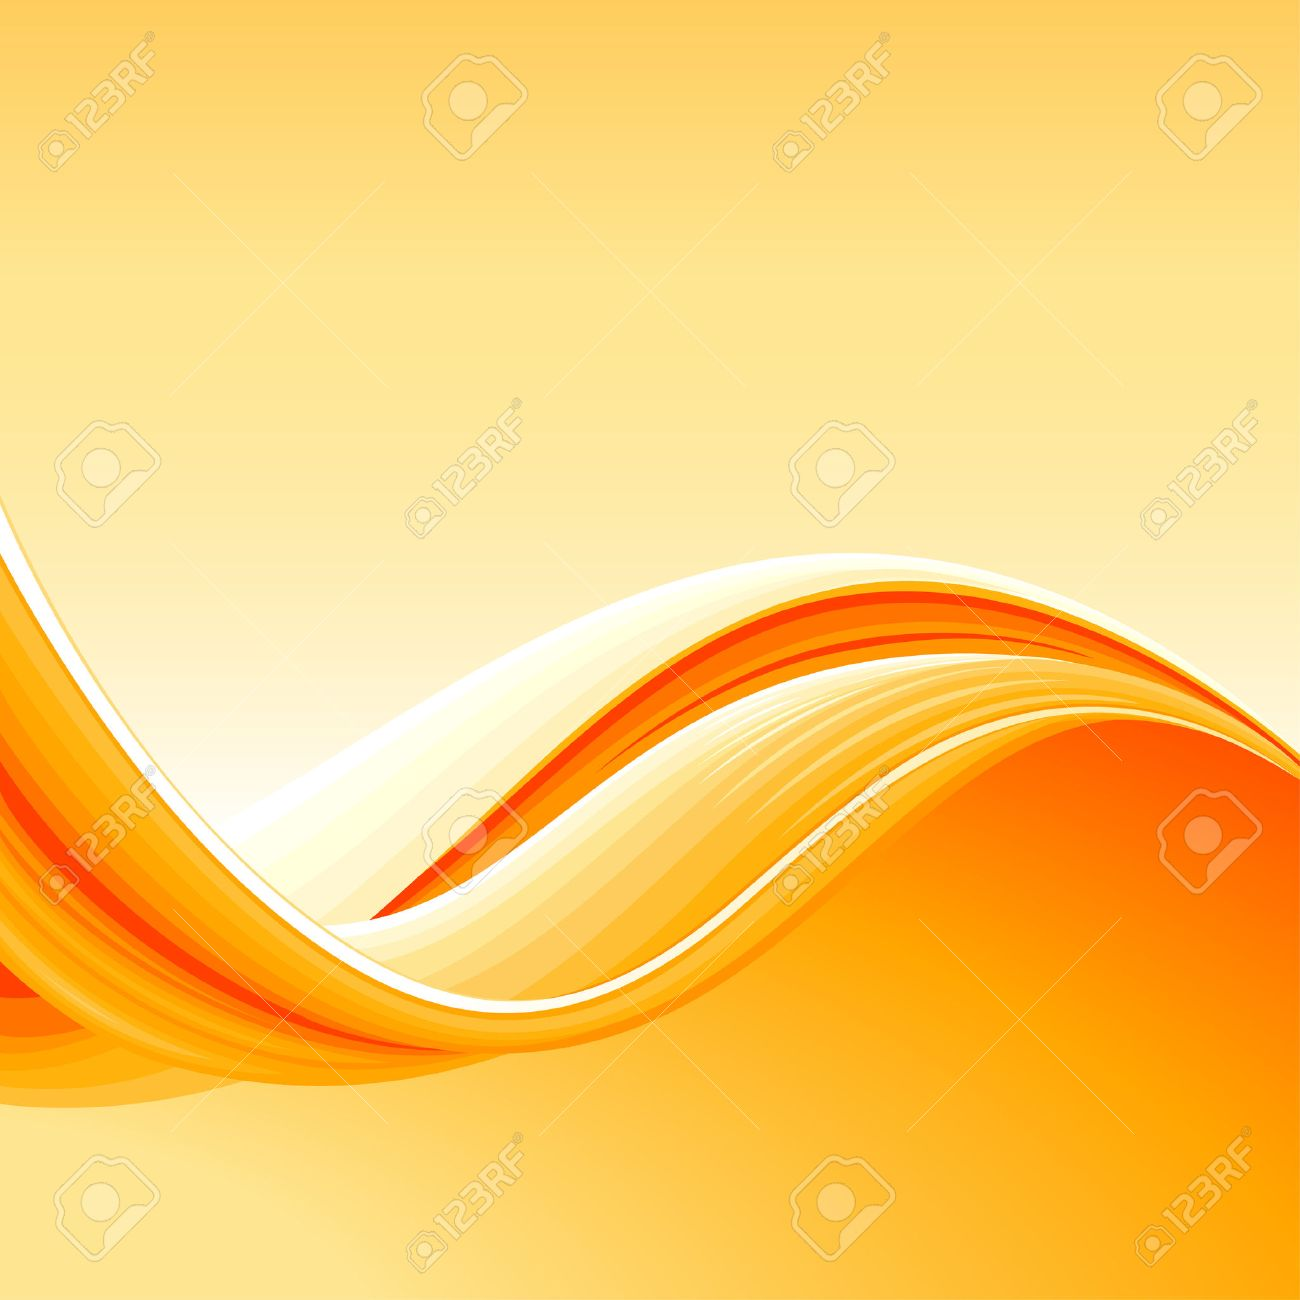 Colorful Abstract Wave Background, editable vector illustration Stock Vector - 4770169